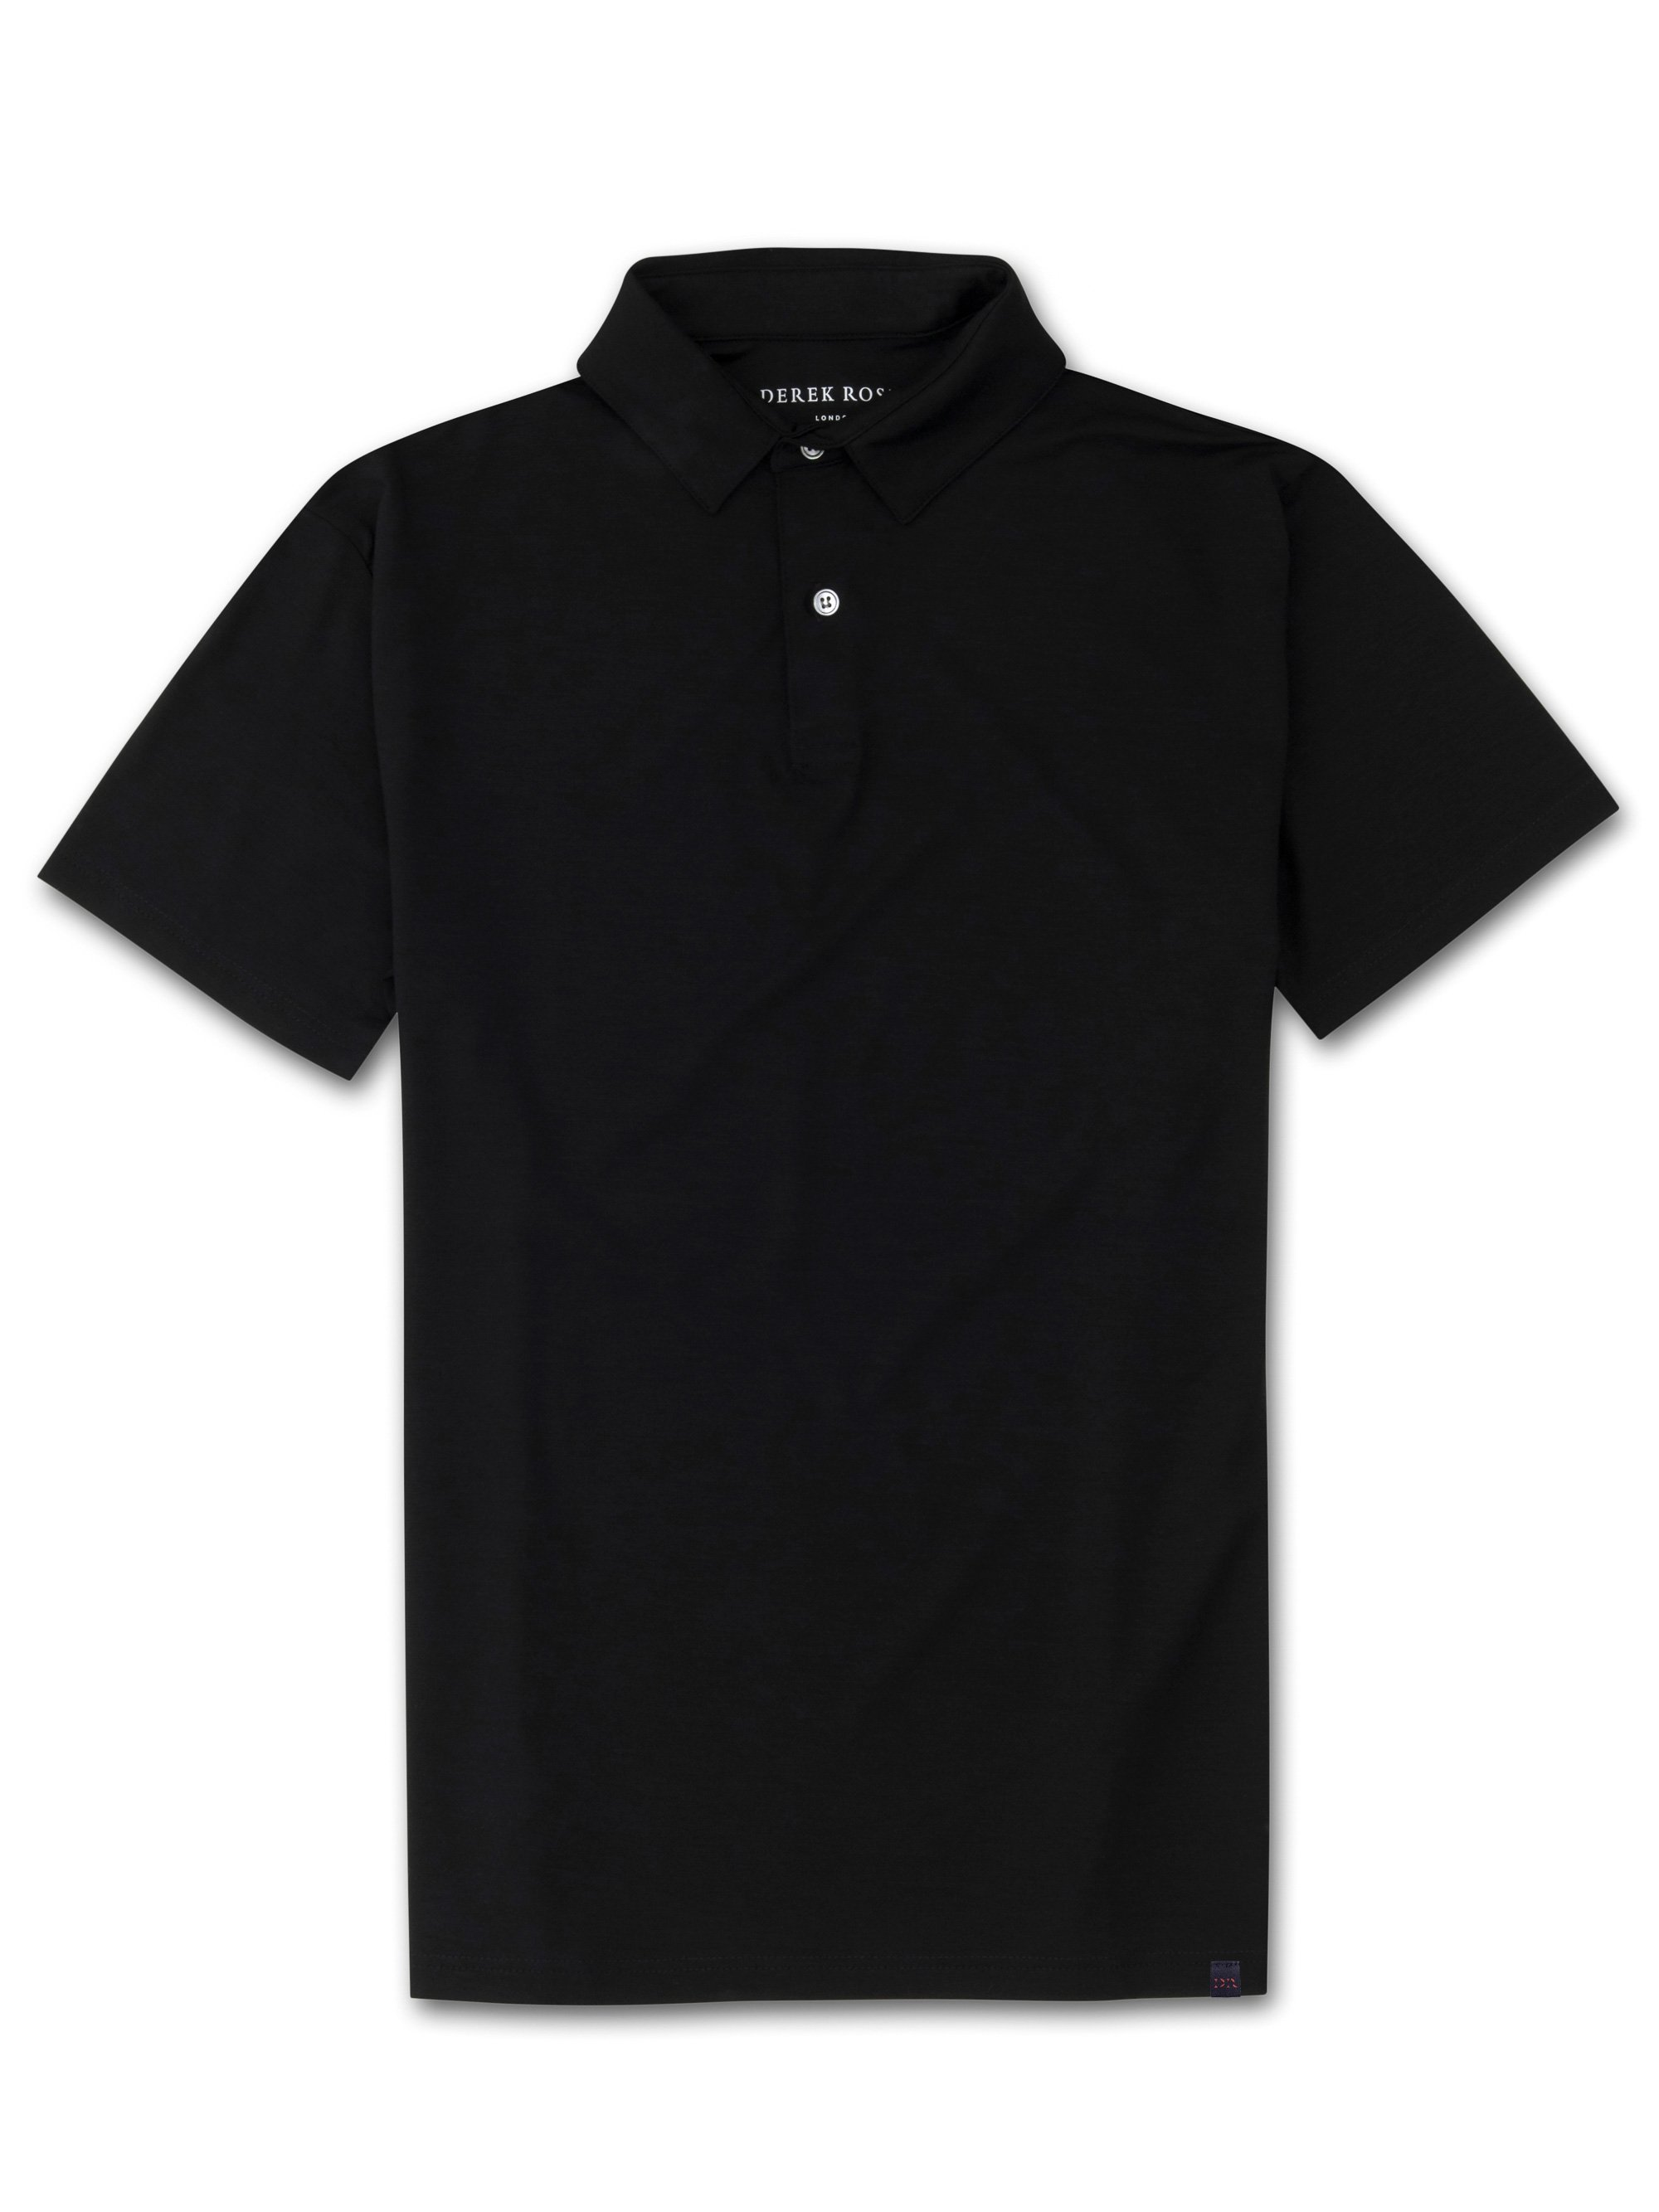 Men's Short Sleeve Polo Shirt Basel Micro Modal Stretch Black